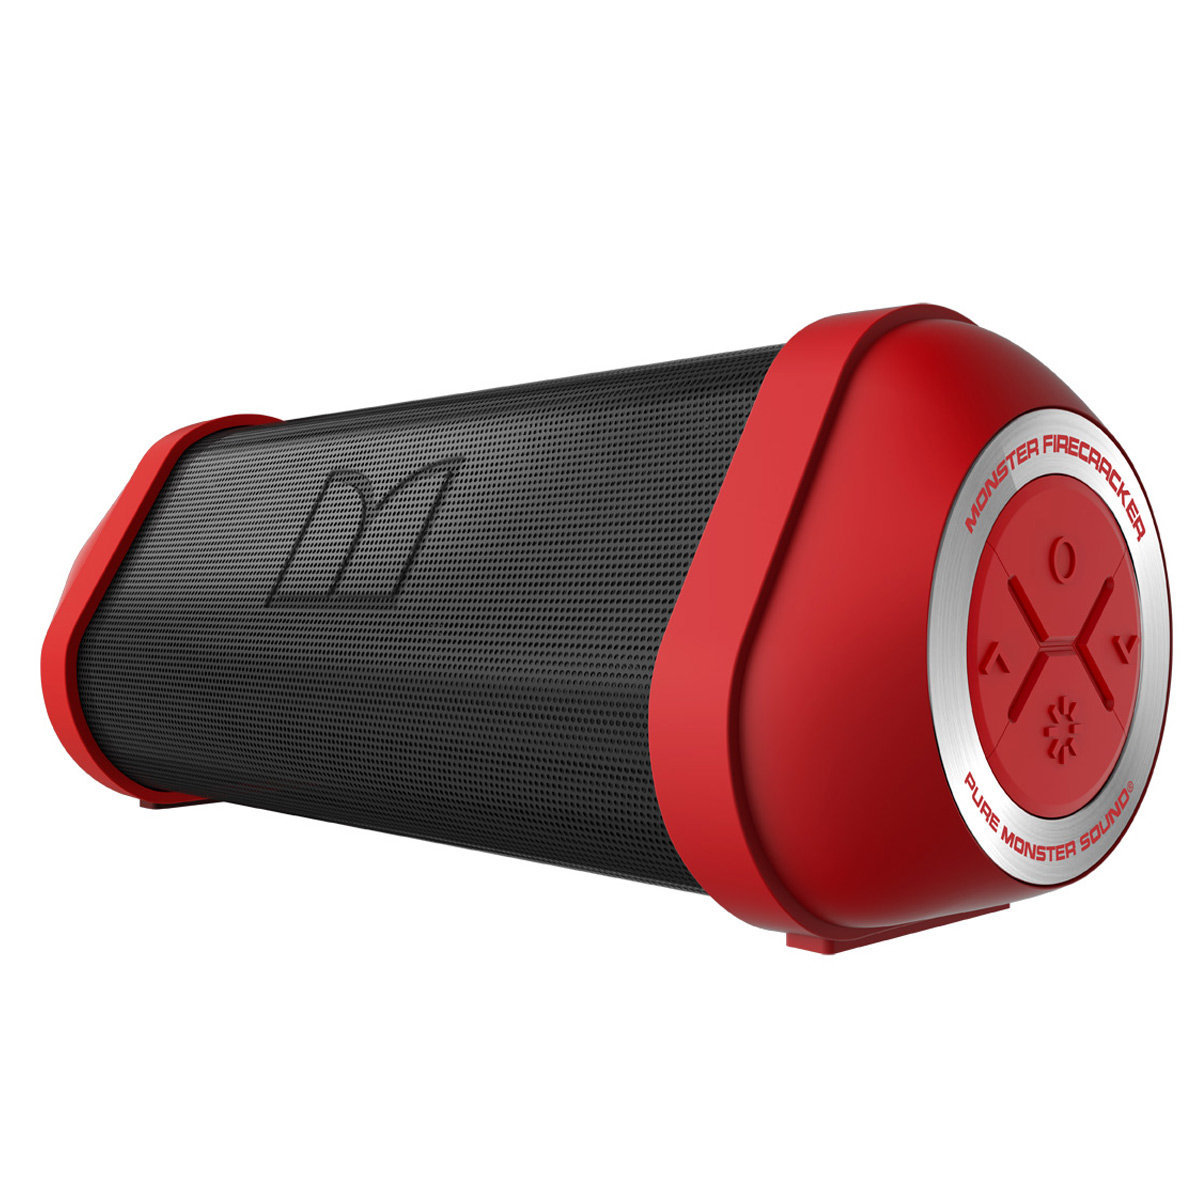 Monster Firecracker Bluetooth Speaker